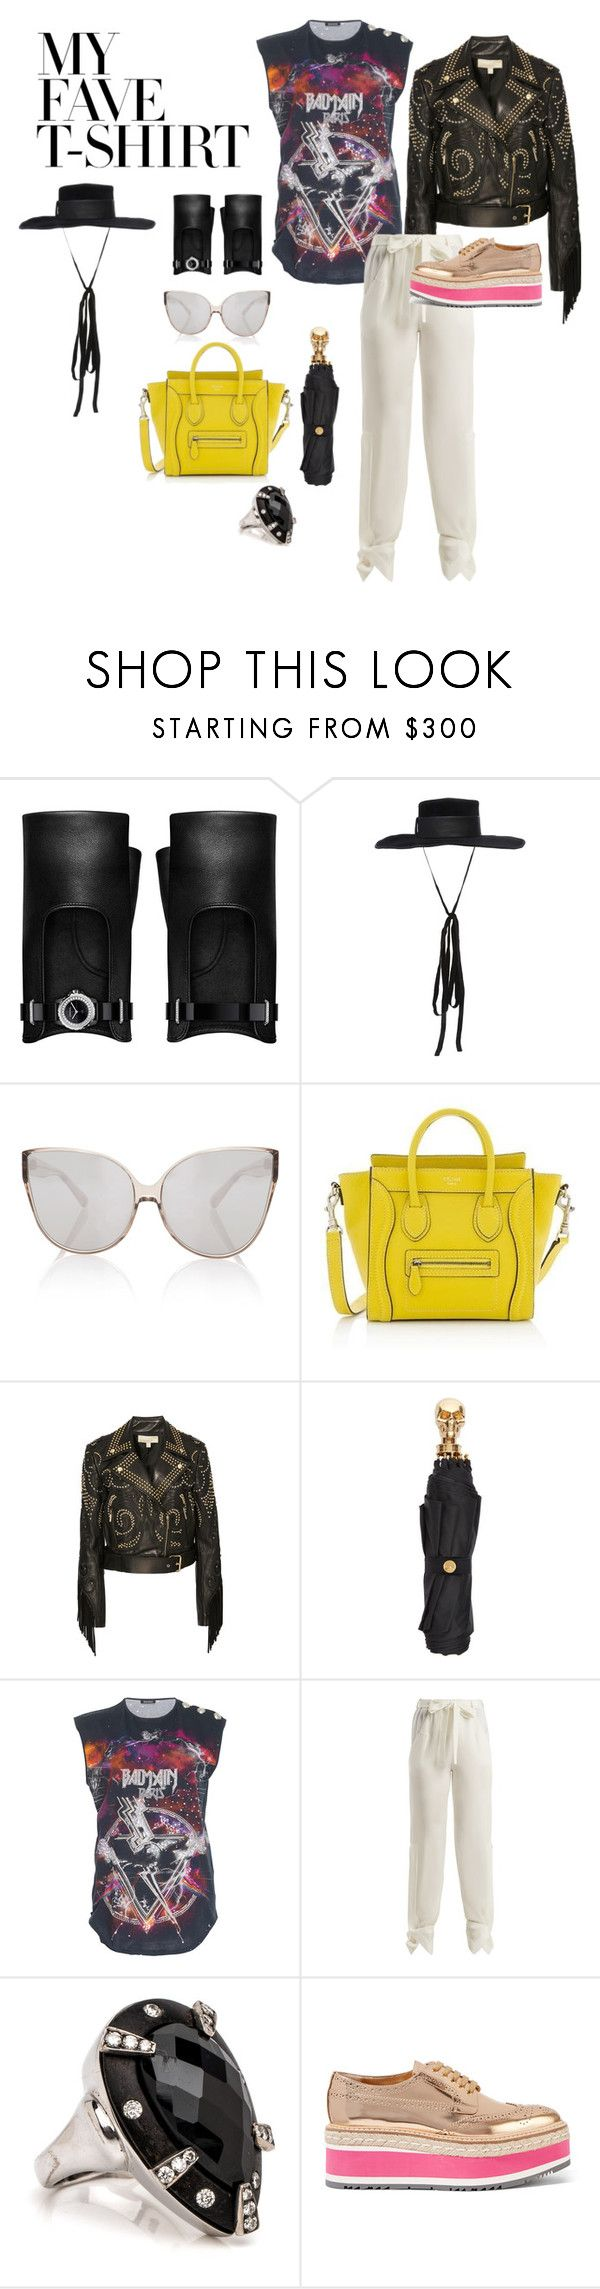 """Untitled #359"" by ilich-moreno ❤ liked on Polyvore featuring Chanel, Elie Saab, Linda Farrow, CÉLINE, Alexander McQueen, Balmain, Roland Mouret, Prada and MyFaveTshirt"